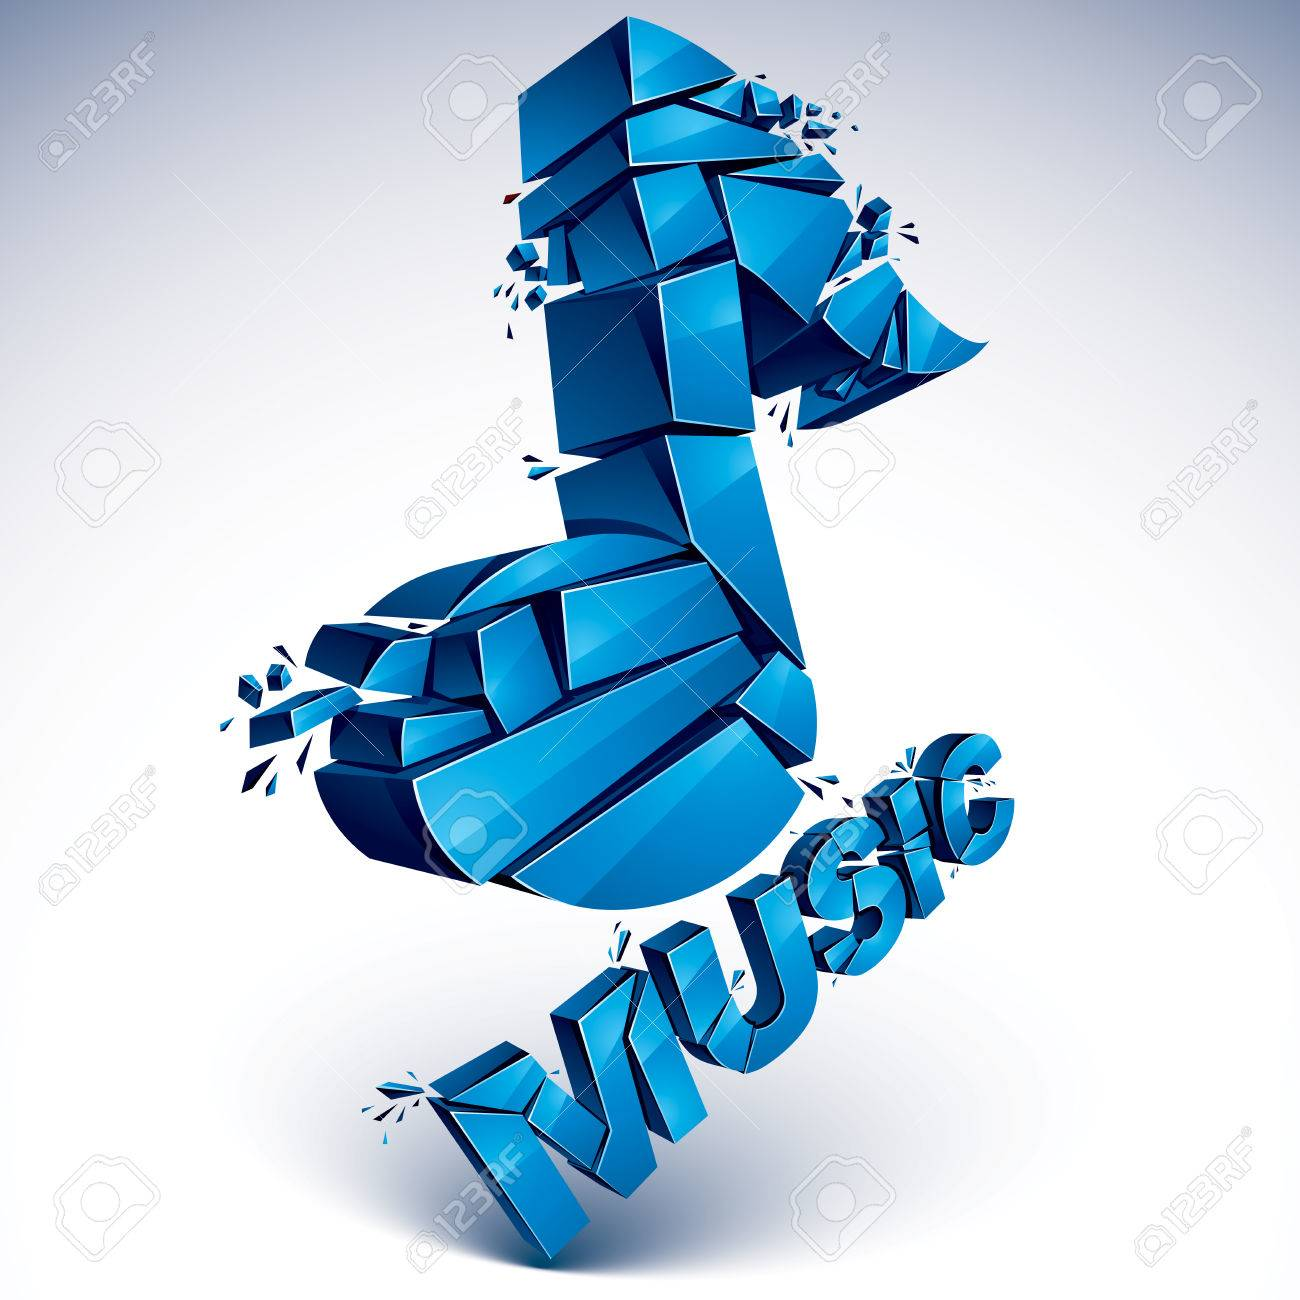 3d Vector Blue Shattered Musical Notes With Music Word Art Melody